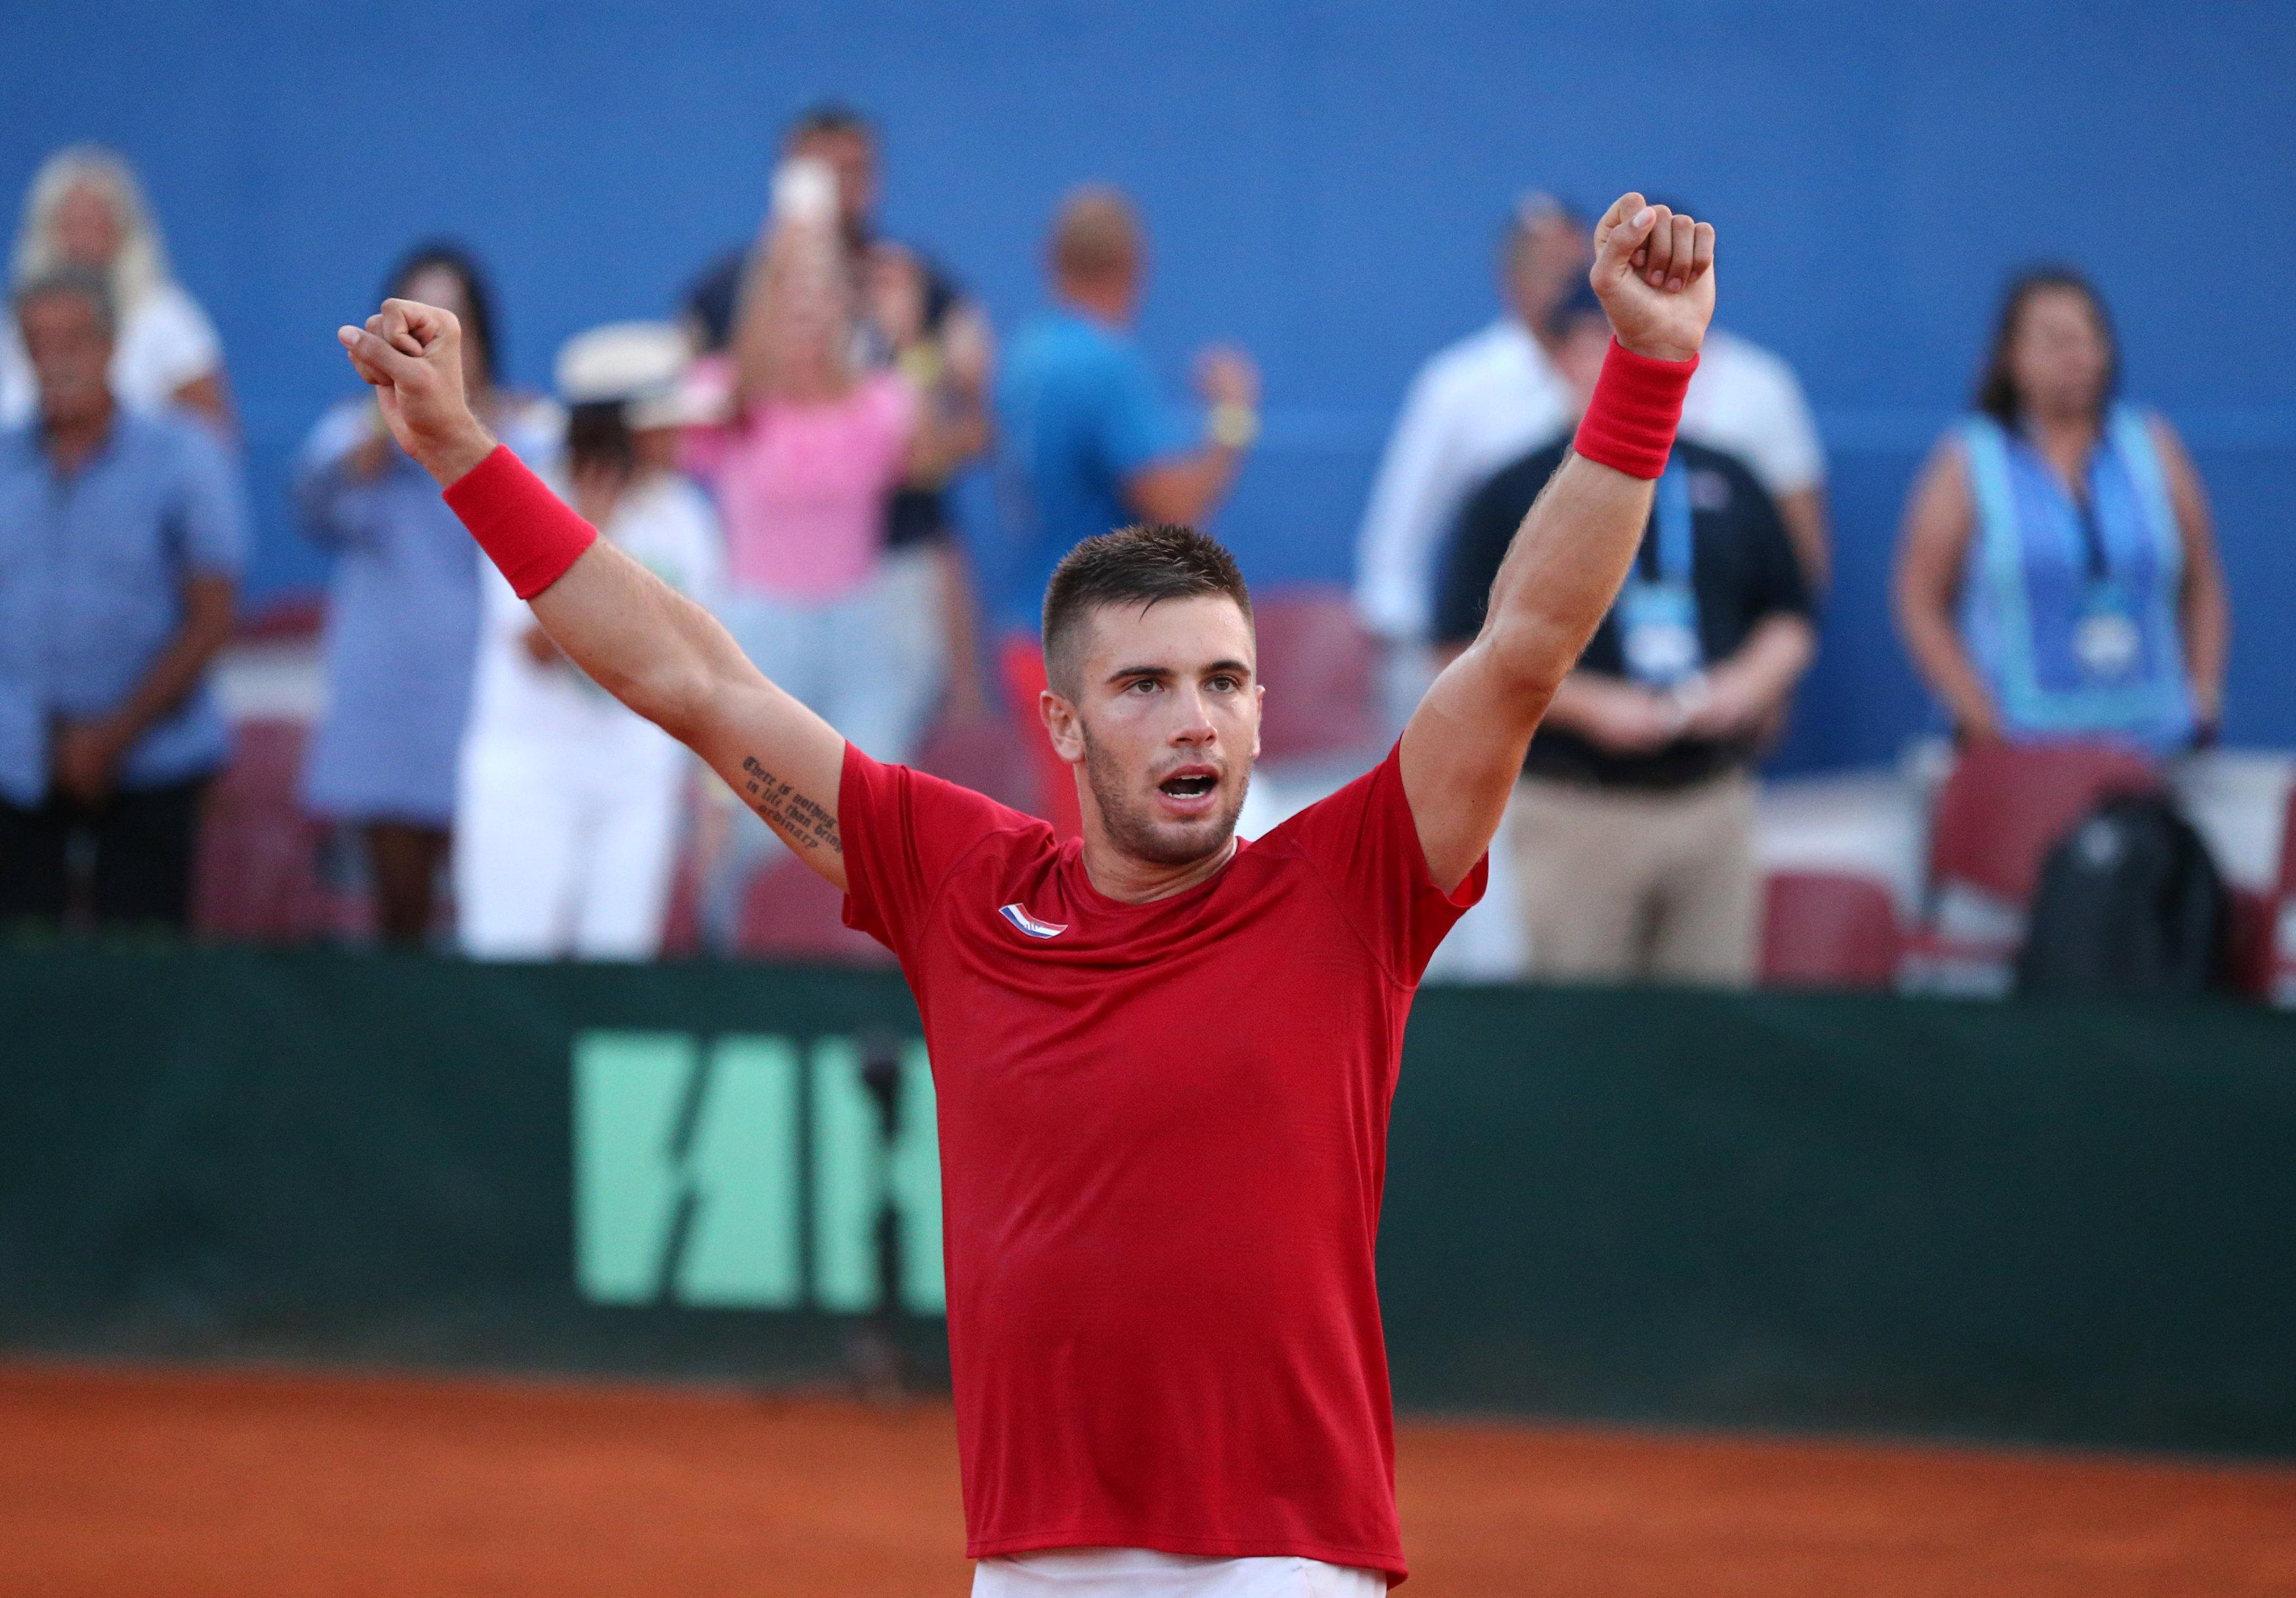 Borna Coric edged out Frances Tiafoe in one of the all-time classics